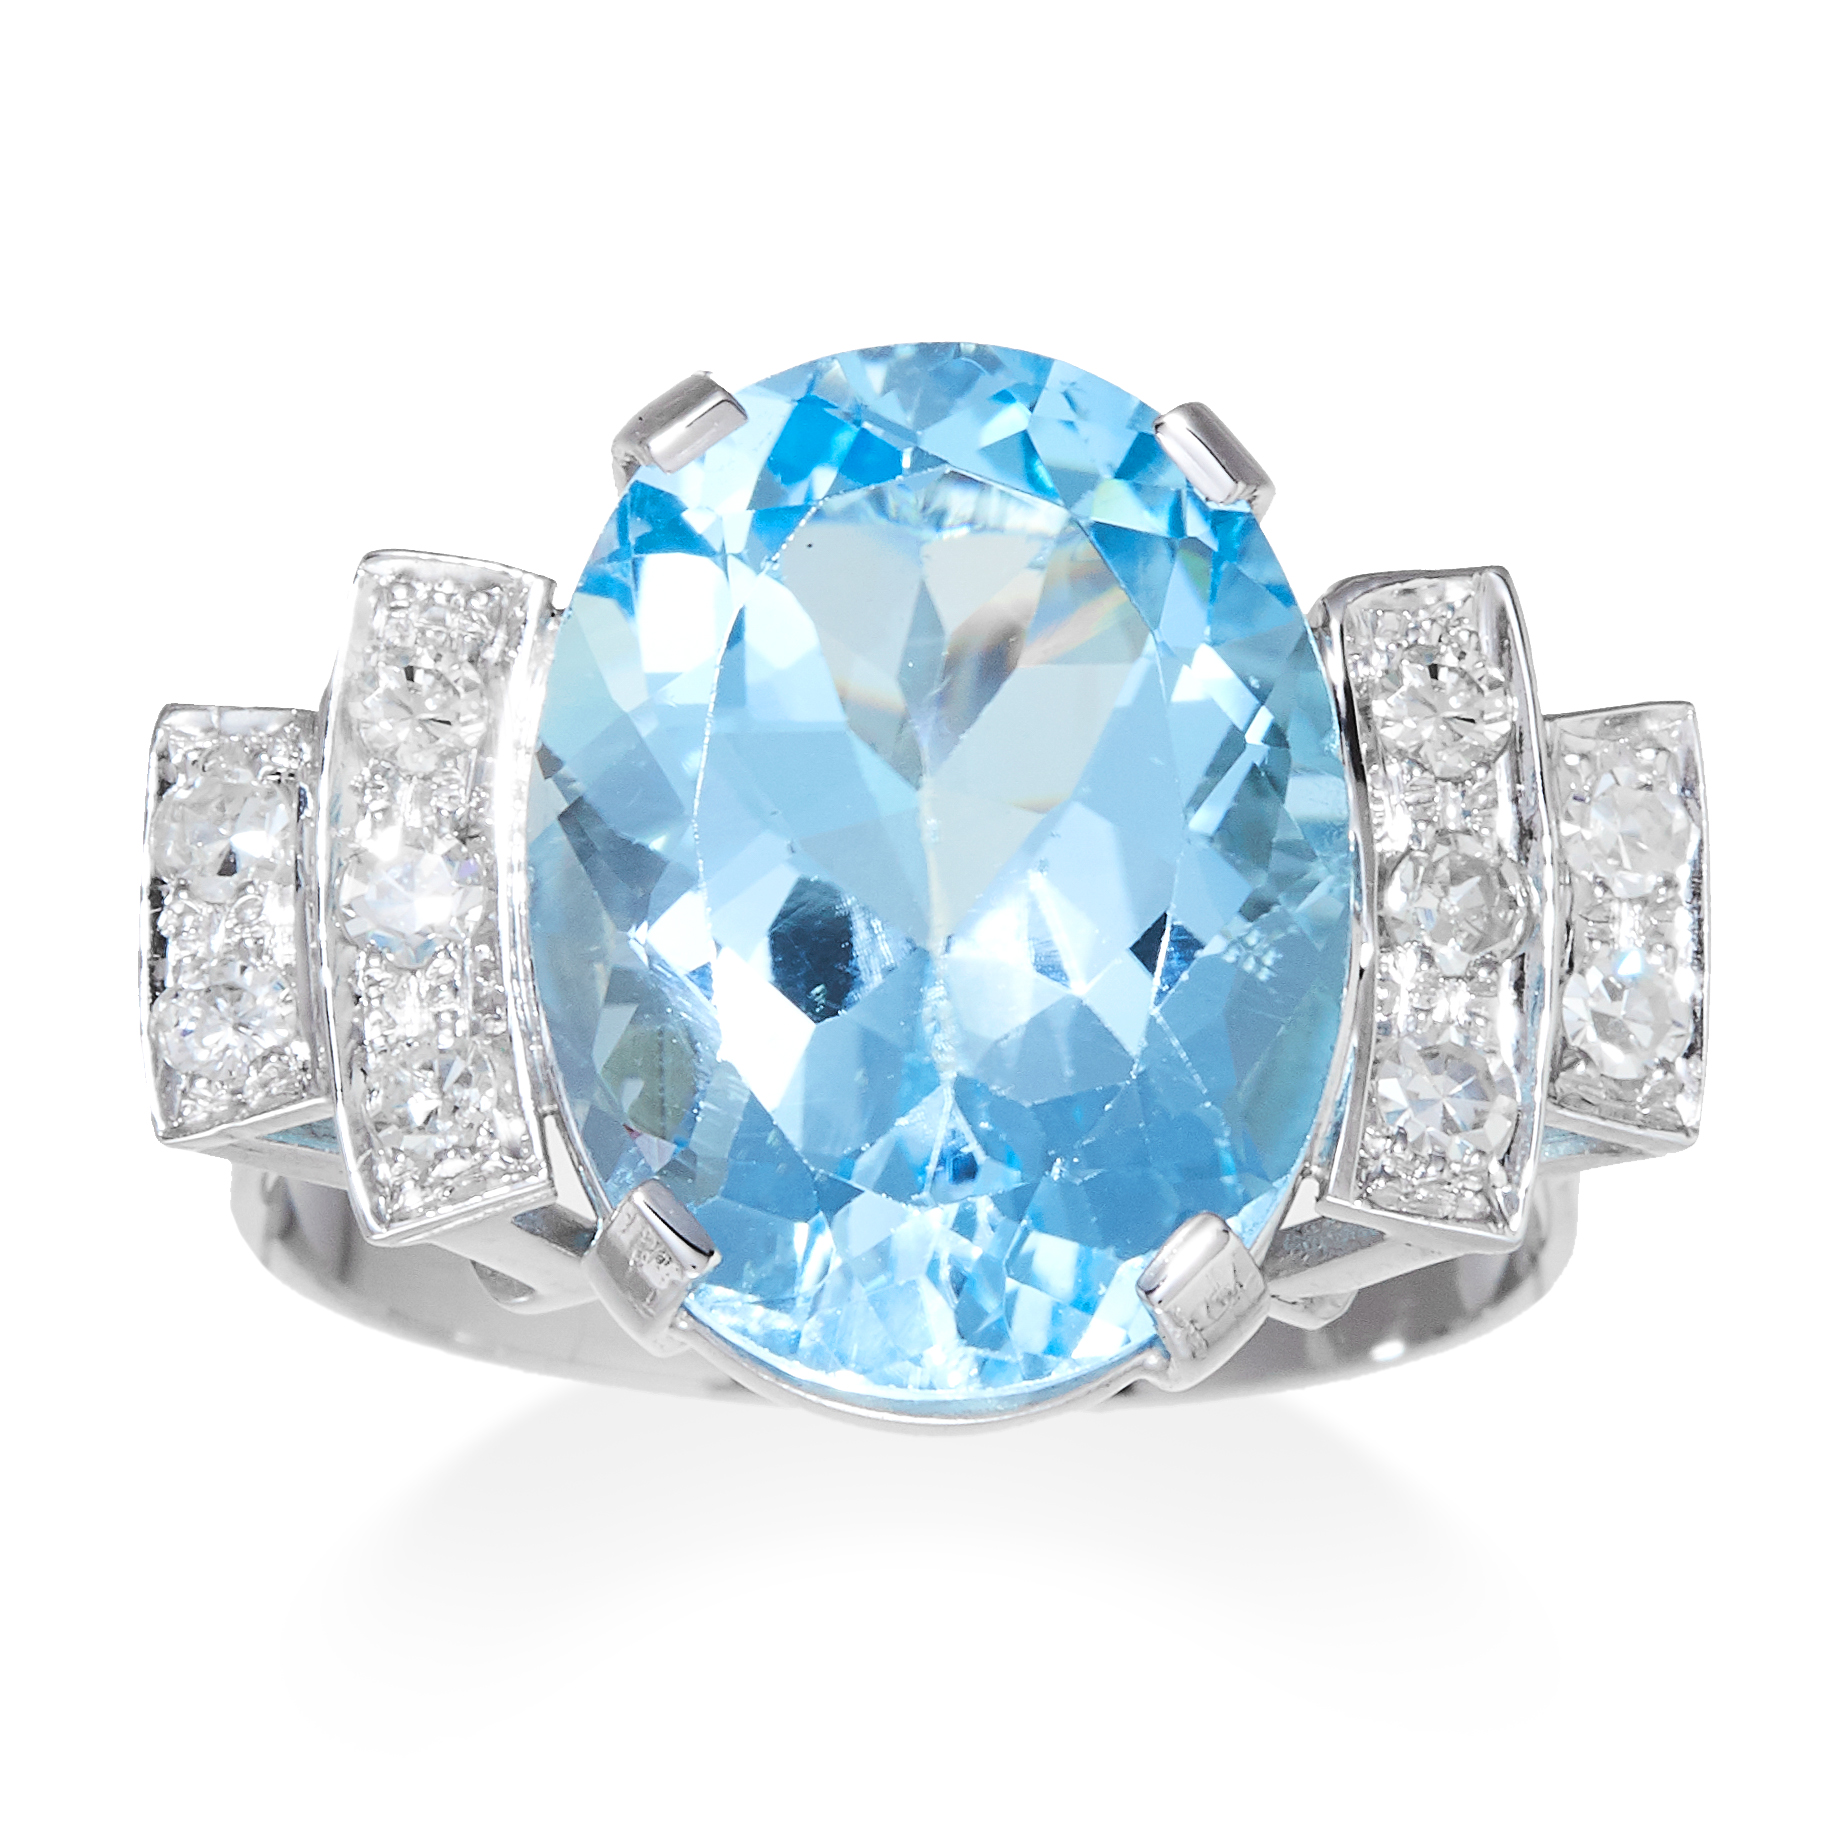 AN ART DECO AQUAMARINE AND DIAMOND RING in platinum or white gold, the oval cut aquamarine of 7.35